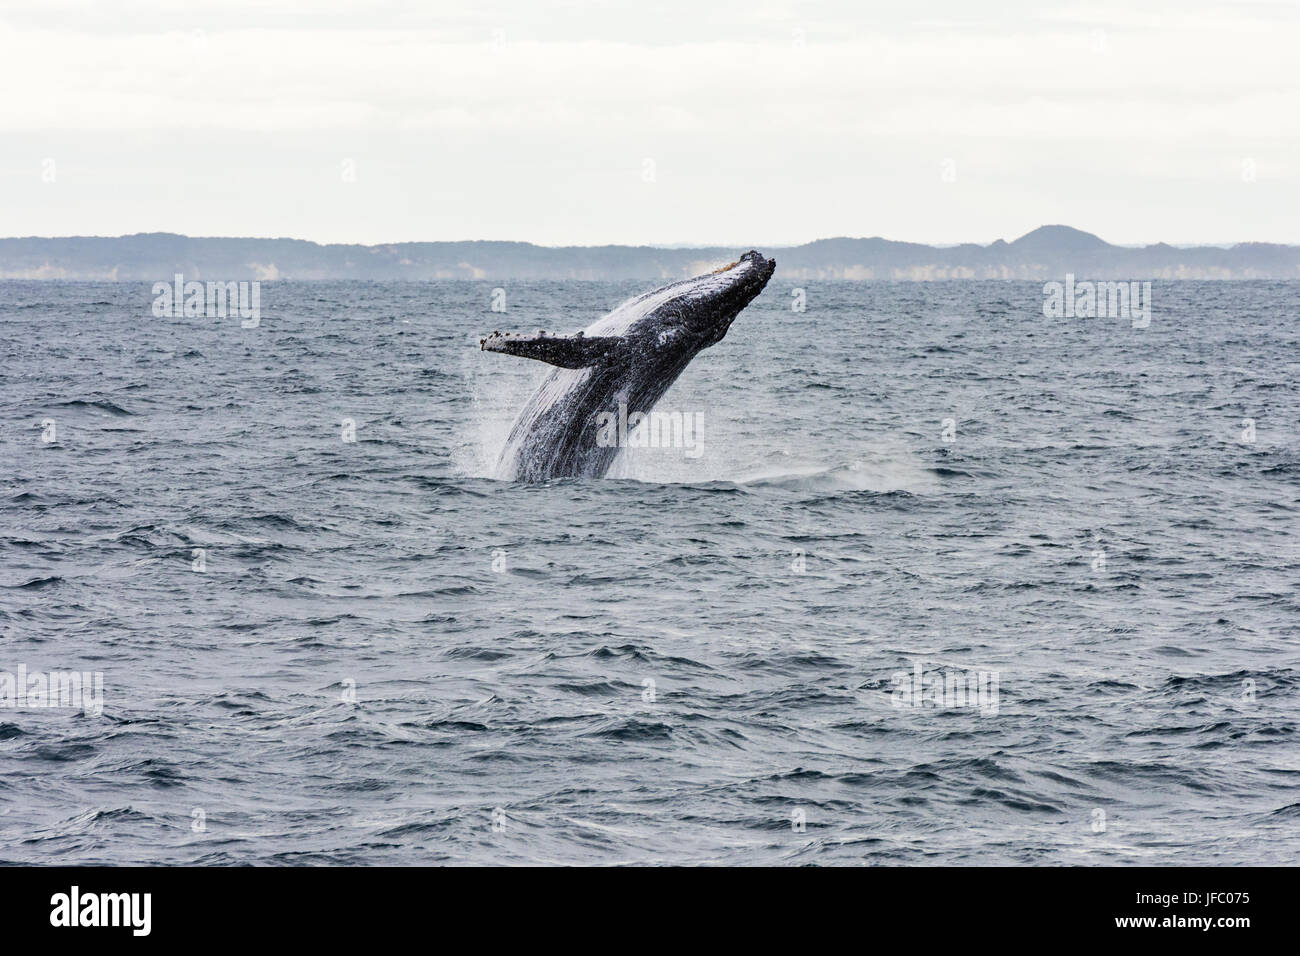 A humpback whale breaching in Flinders Bay, off the coast of Augusta, Western Australia, Australia - Stock Image